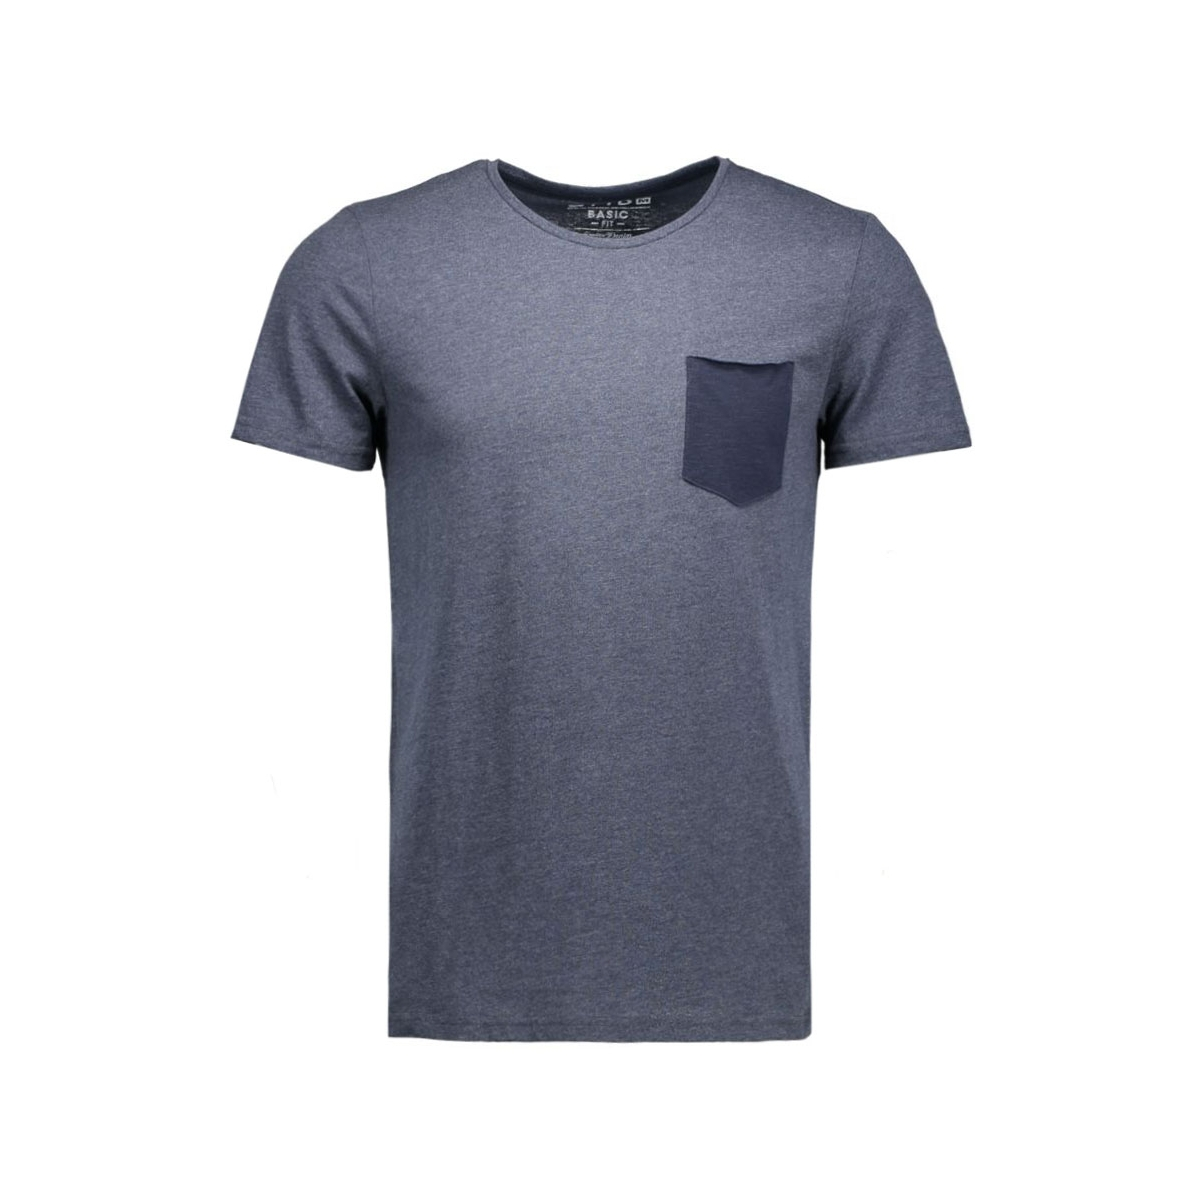 1035309.09.12 tom tailor t-shirt 6576